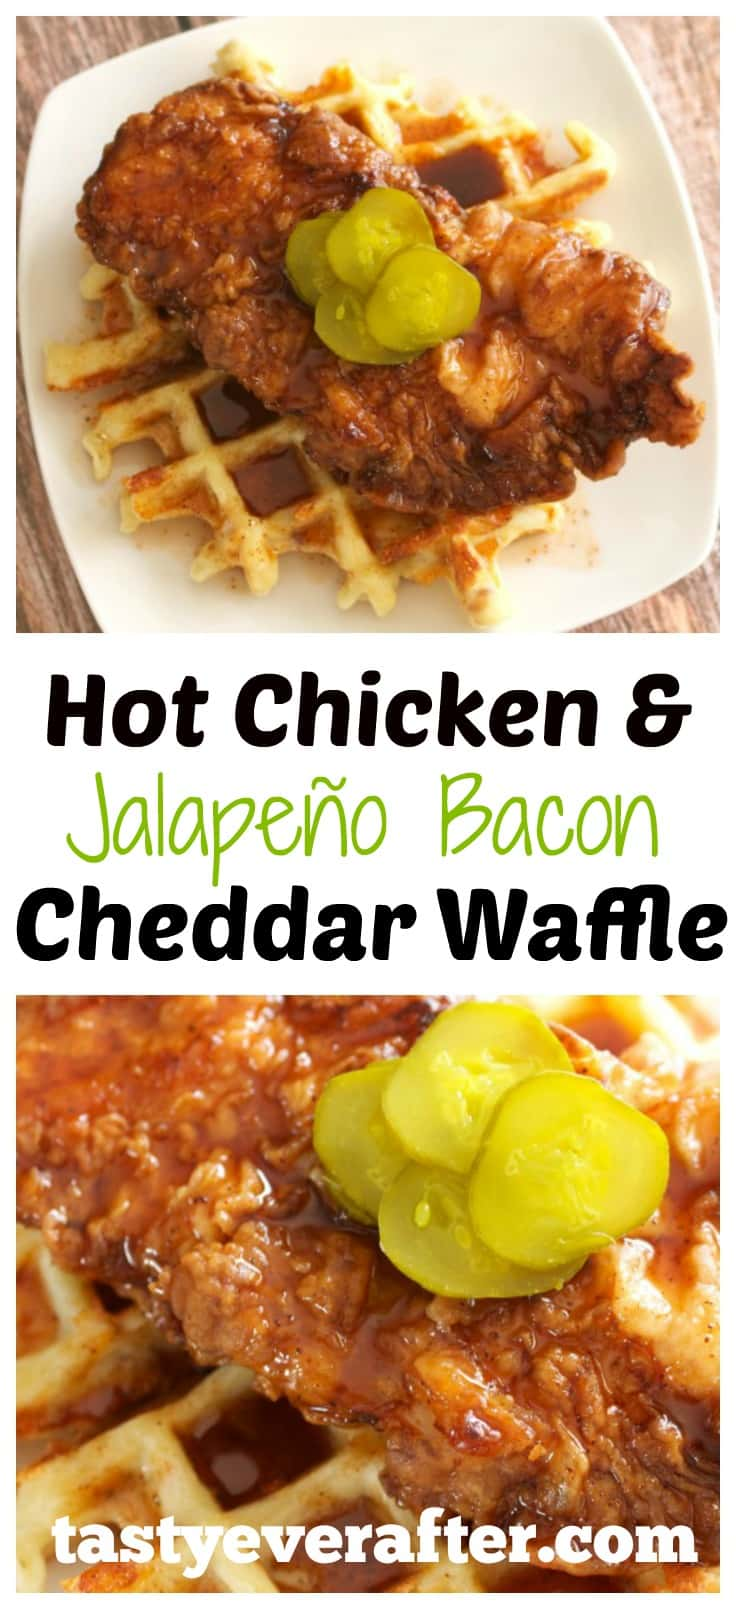 Hot Chicken and Jalapeno Bacon Cheddar Waffle